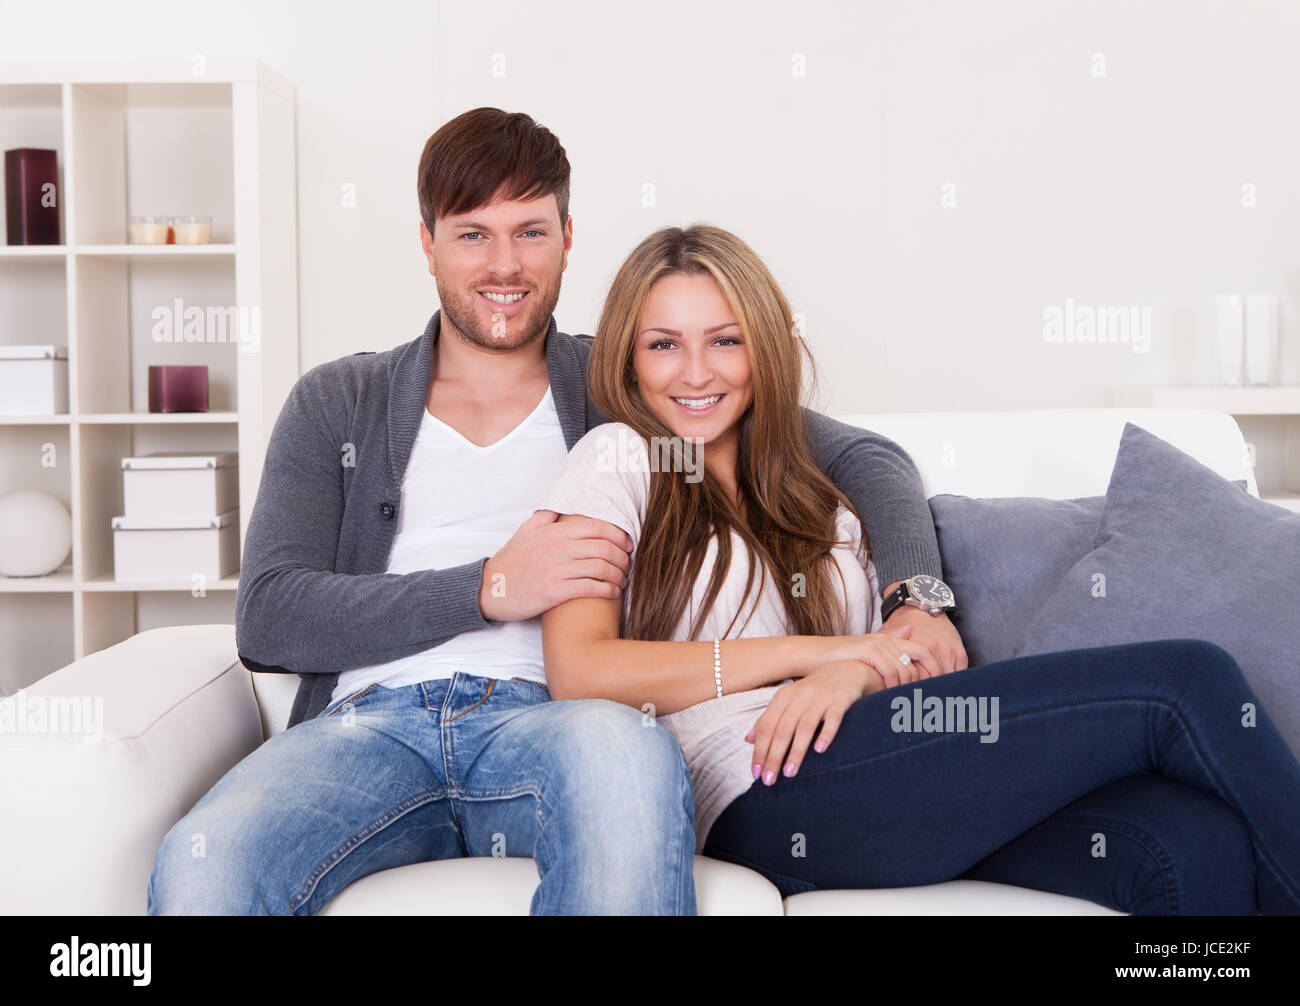 Couple sit on new couch bought at furniture shop. - Stock Image